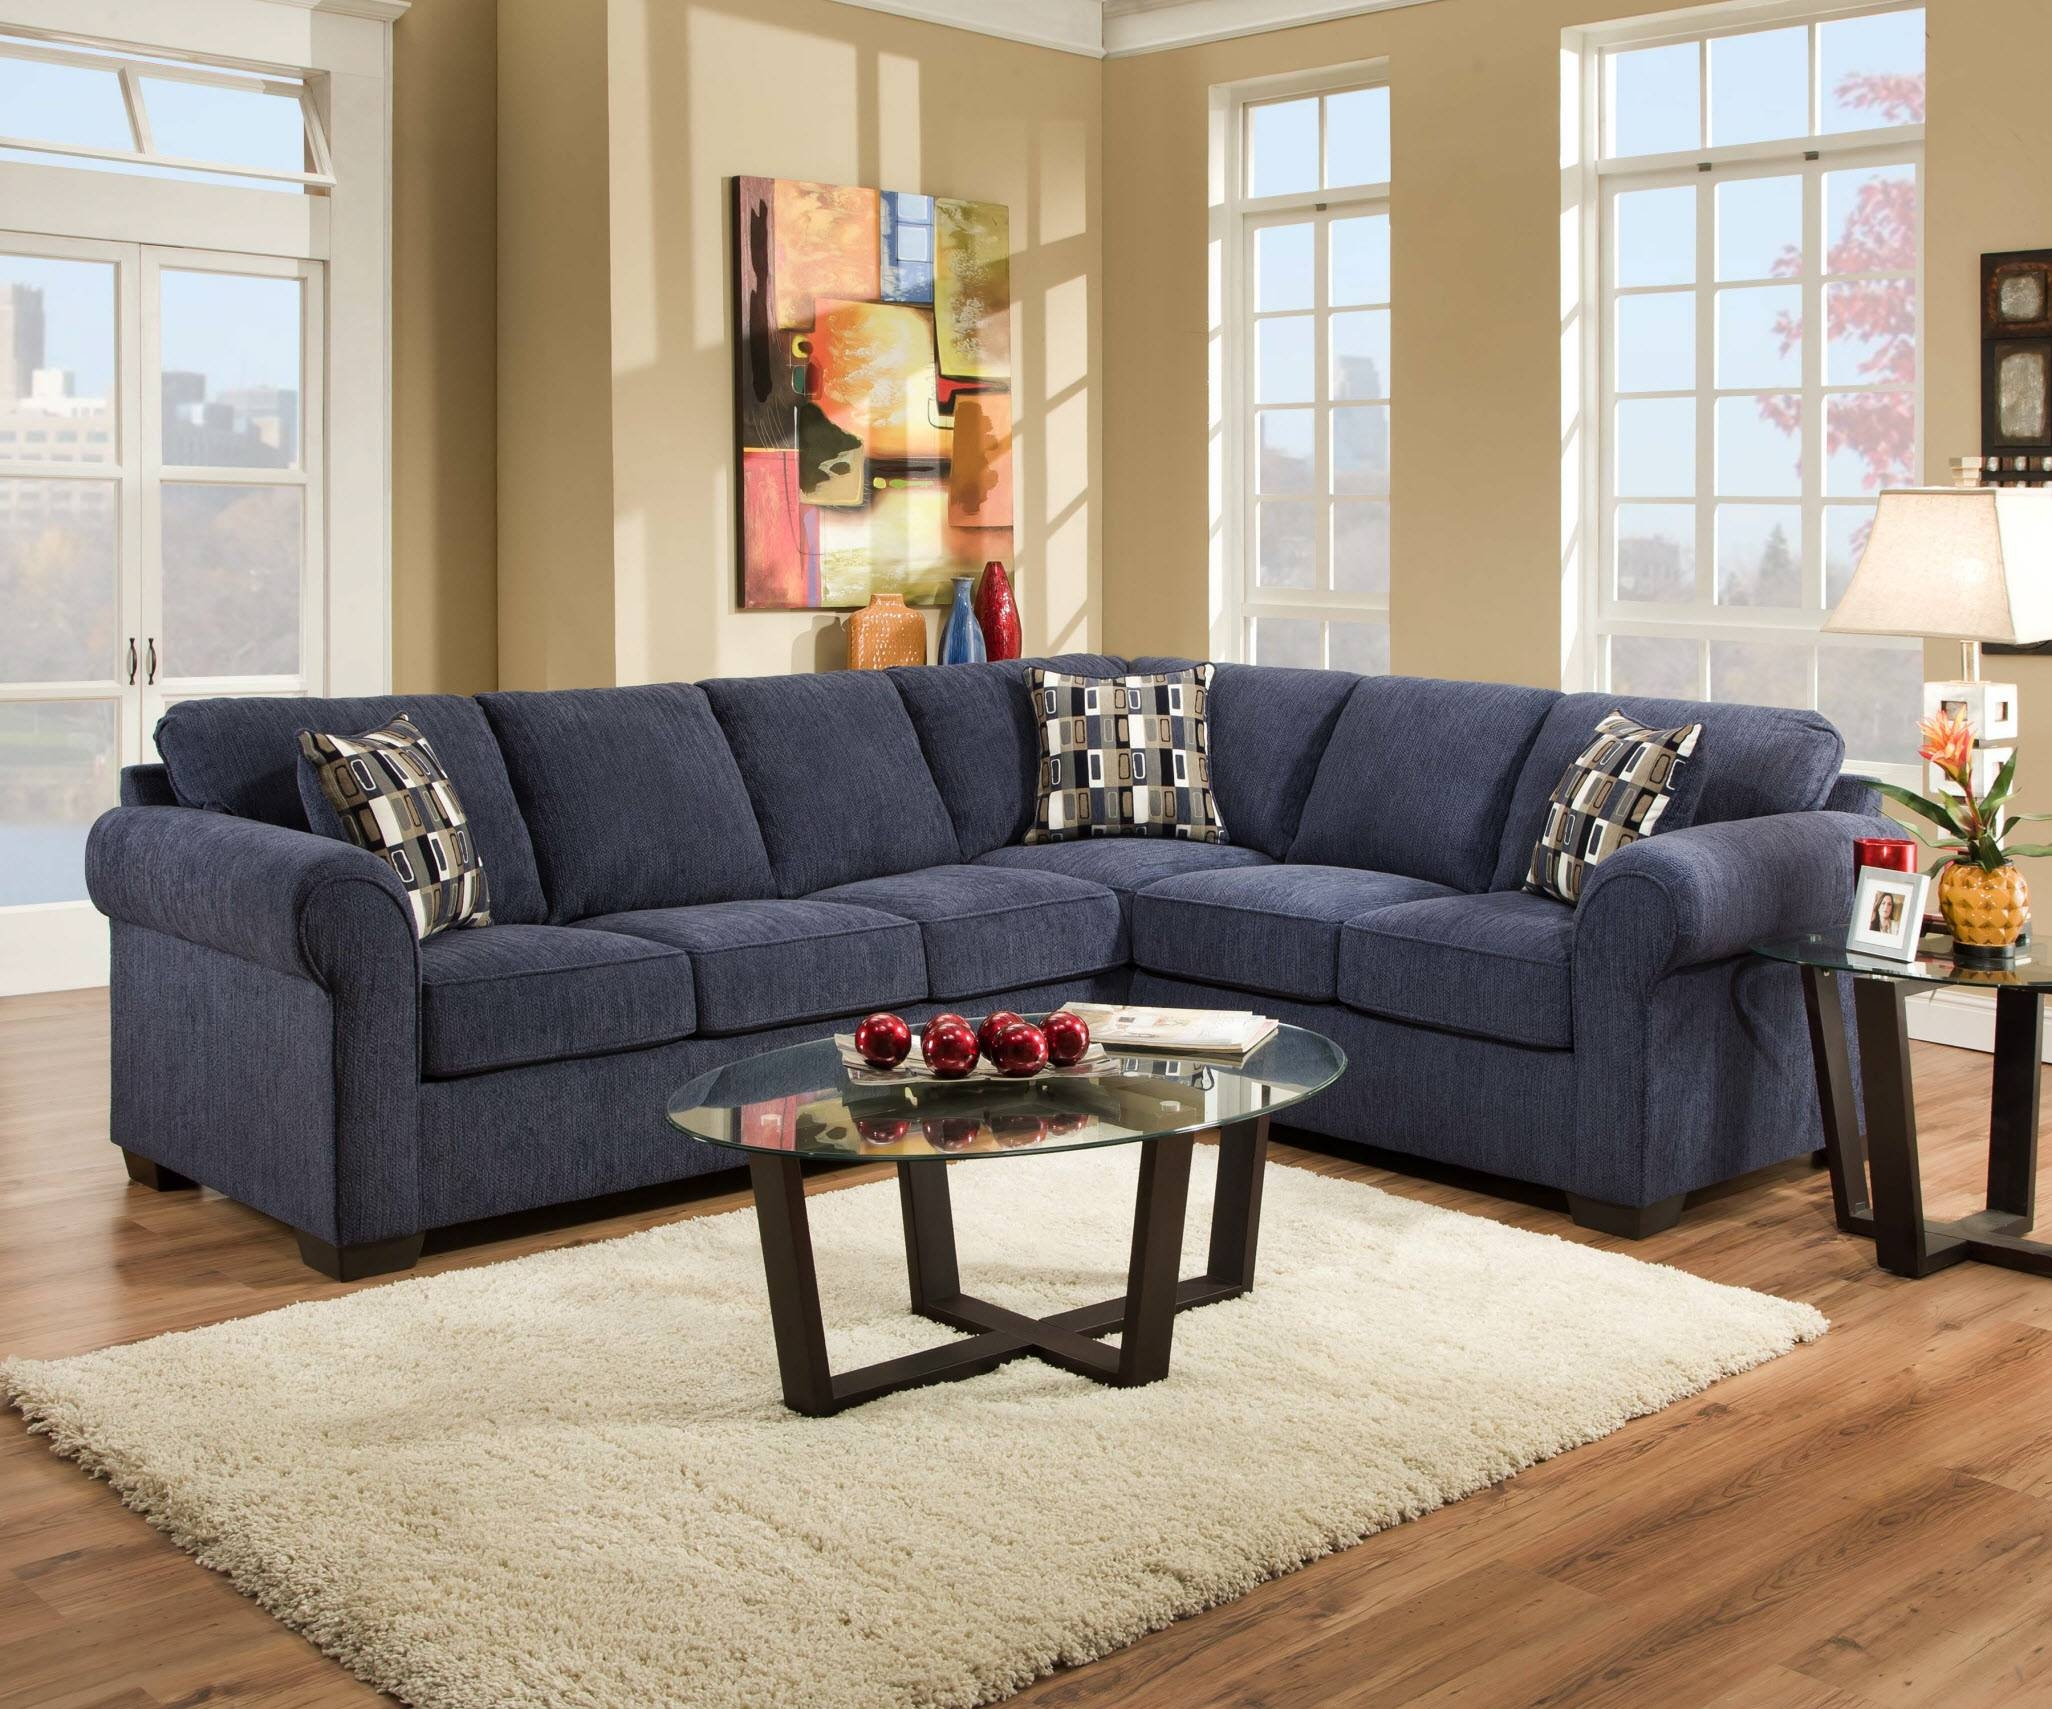 Inspiring Sectional Couches With Dark Blue Microfiber Sofas Decor inside Blue Microfiber Sofas (Image 9 of 15)